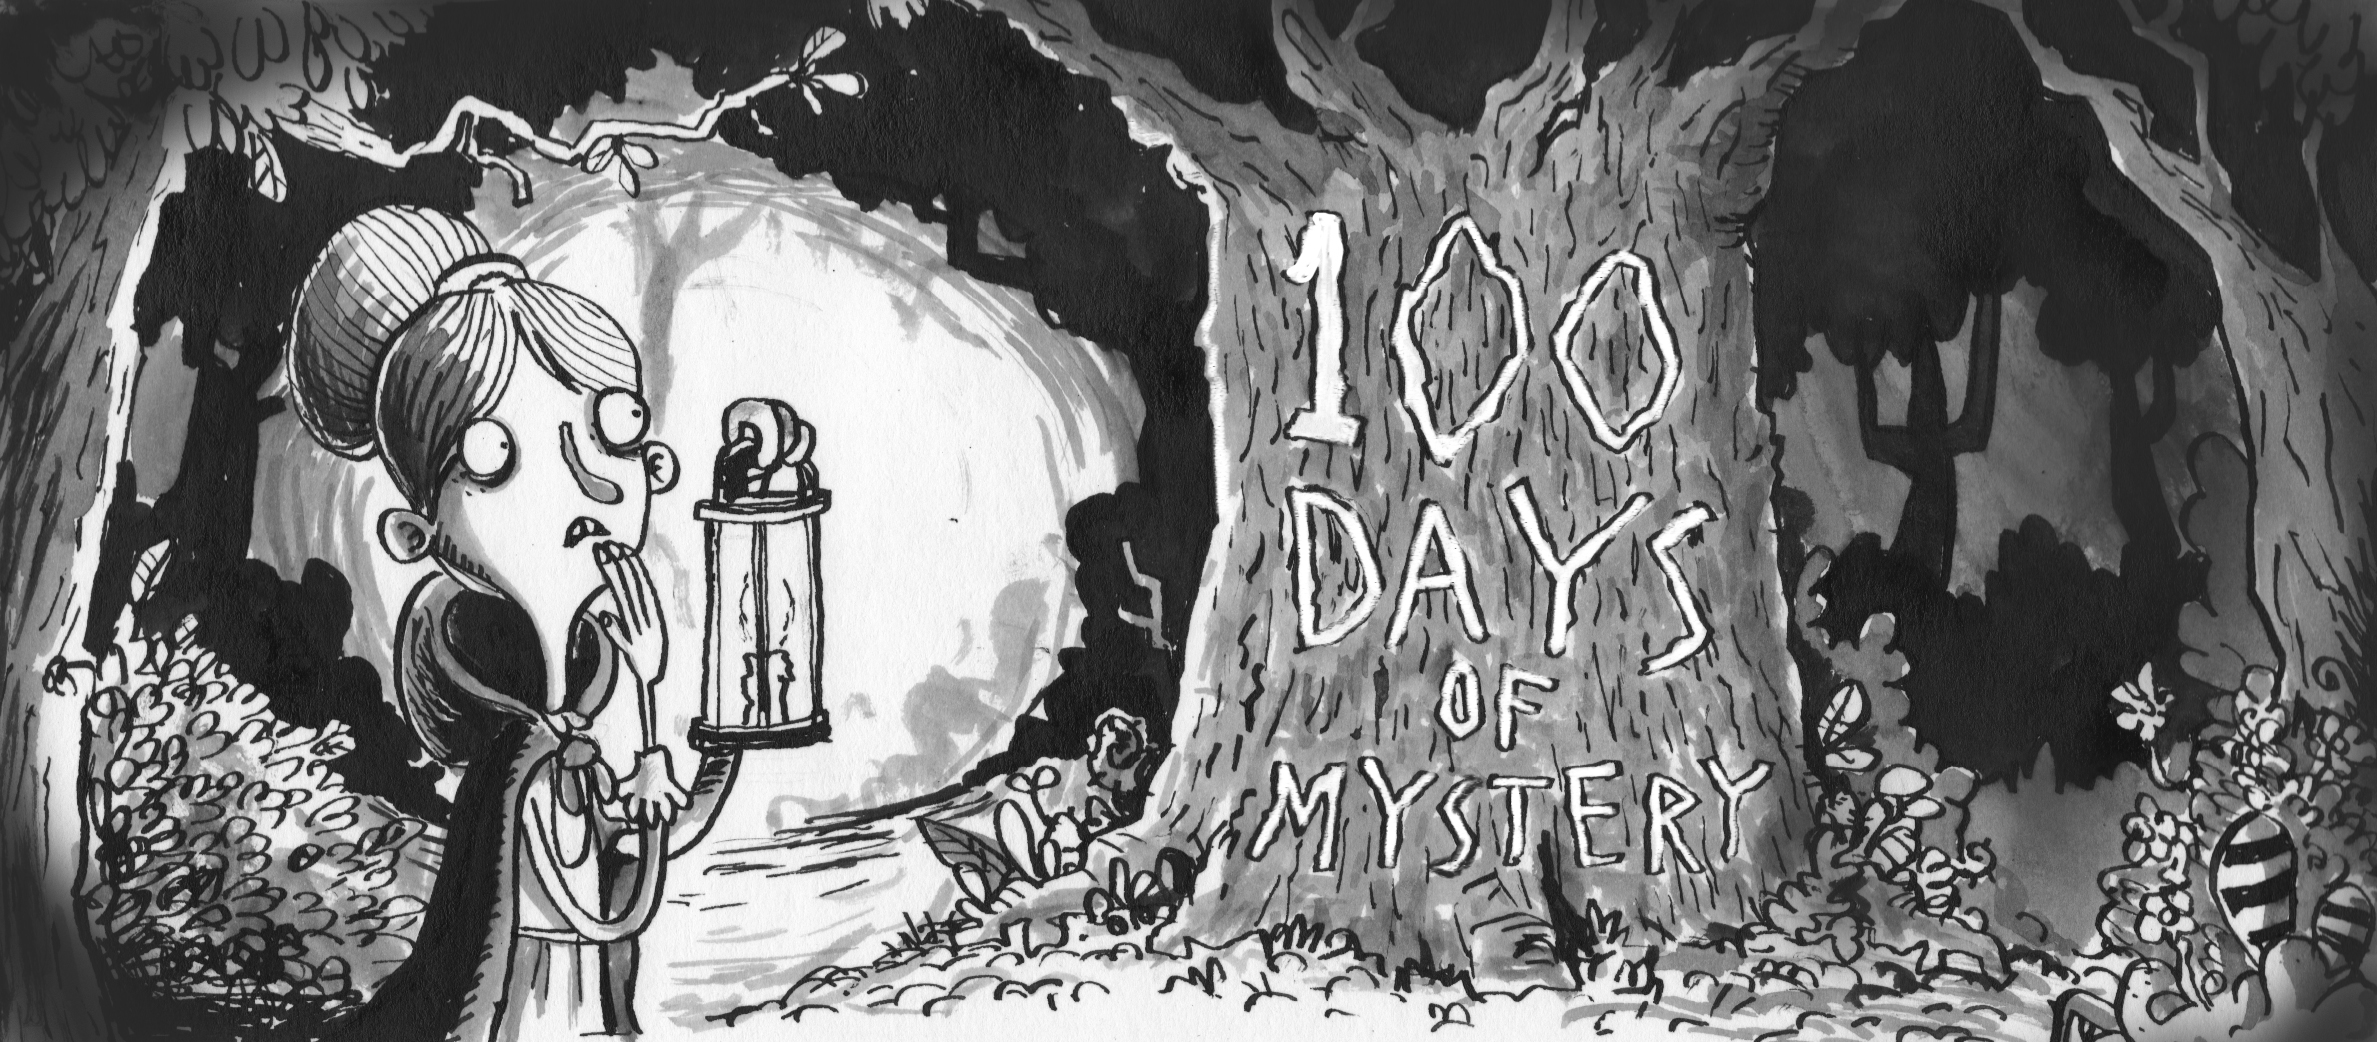 100 Days of Mystery Artbook